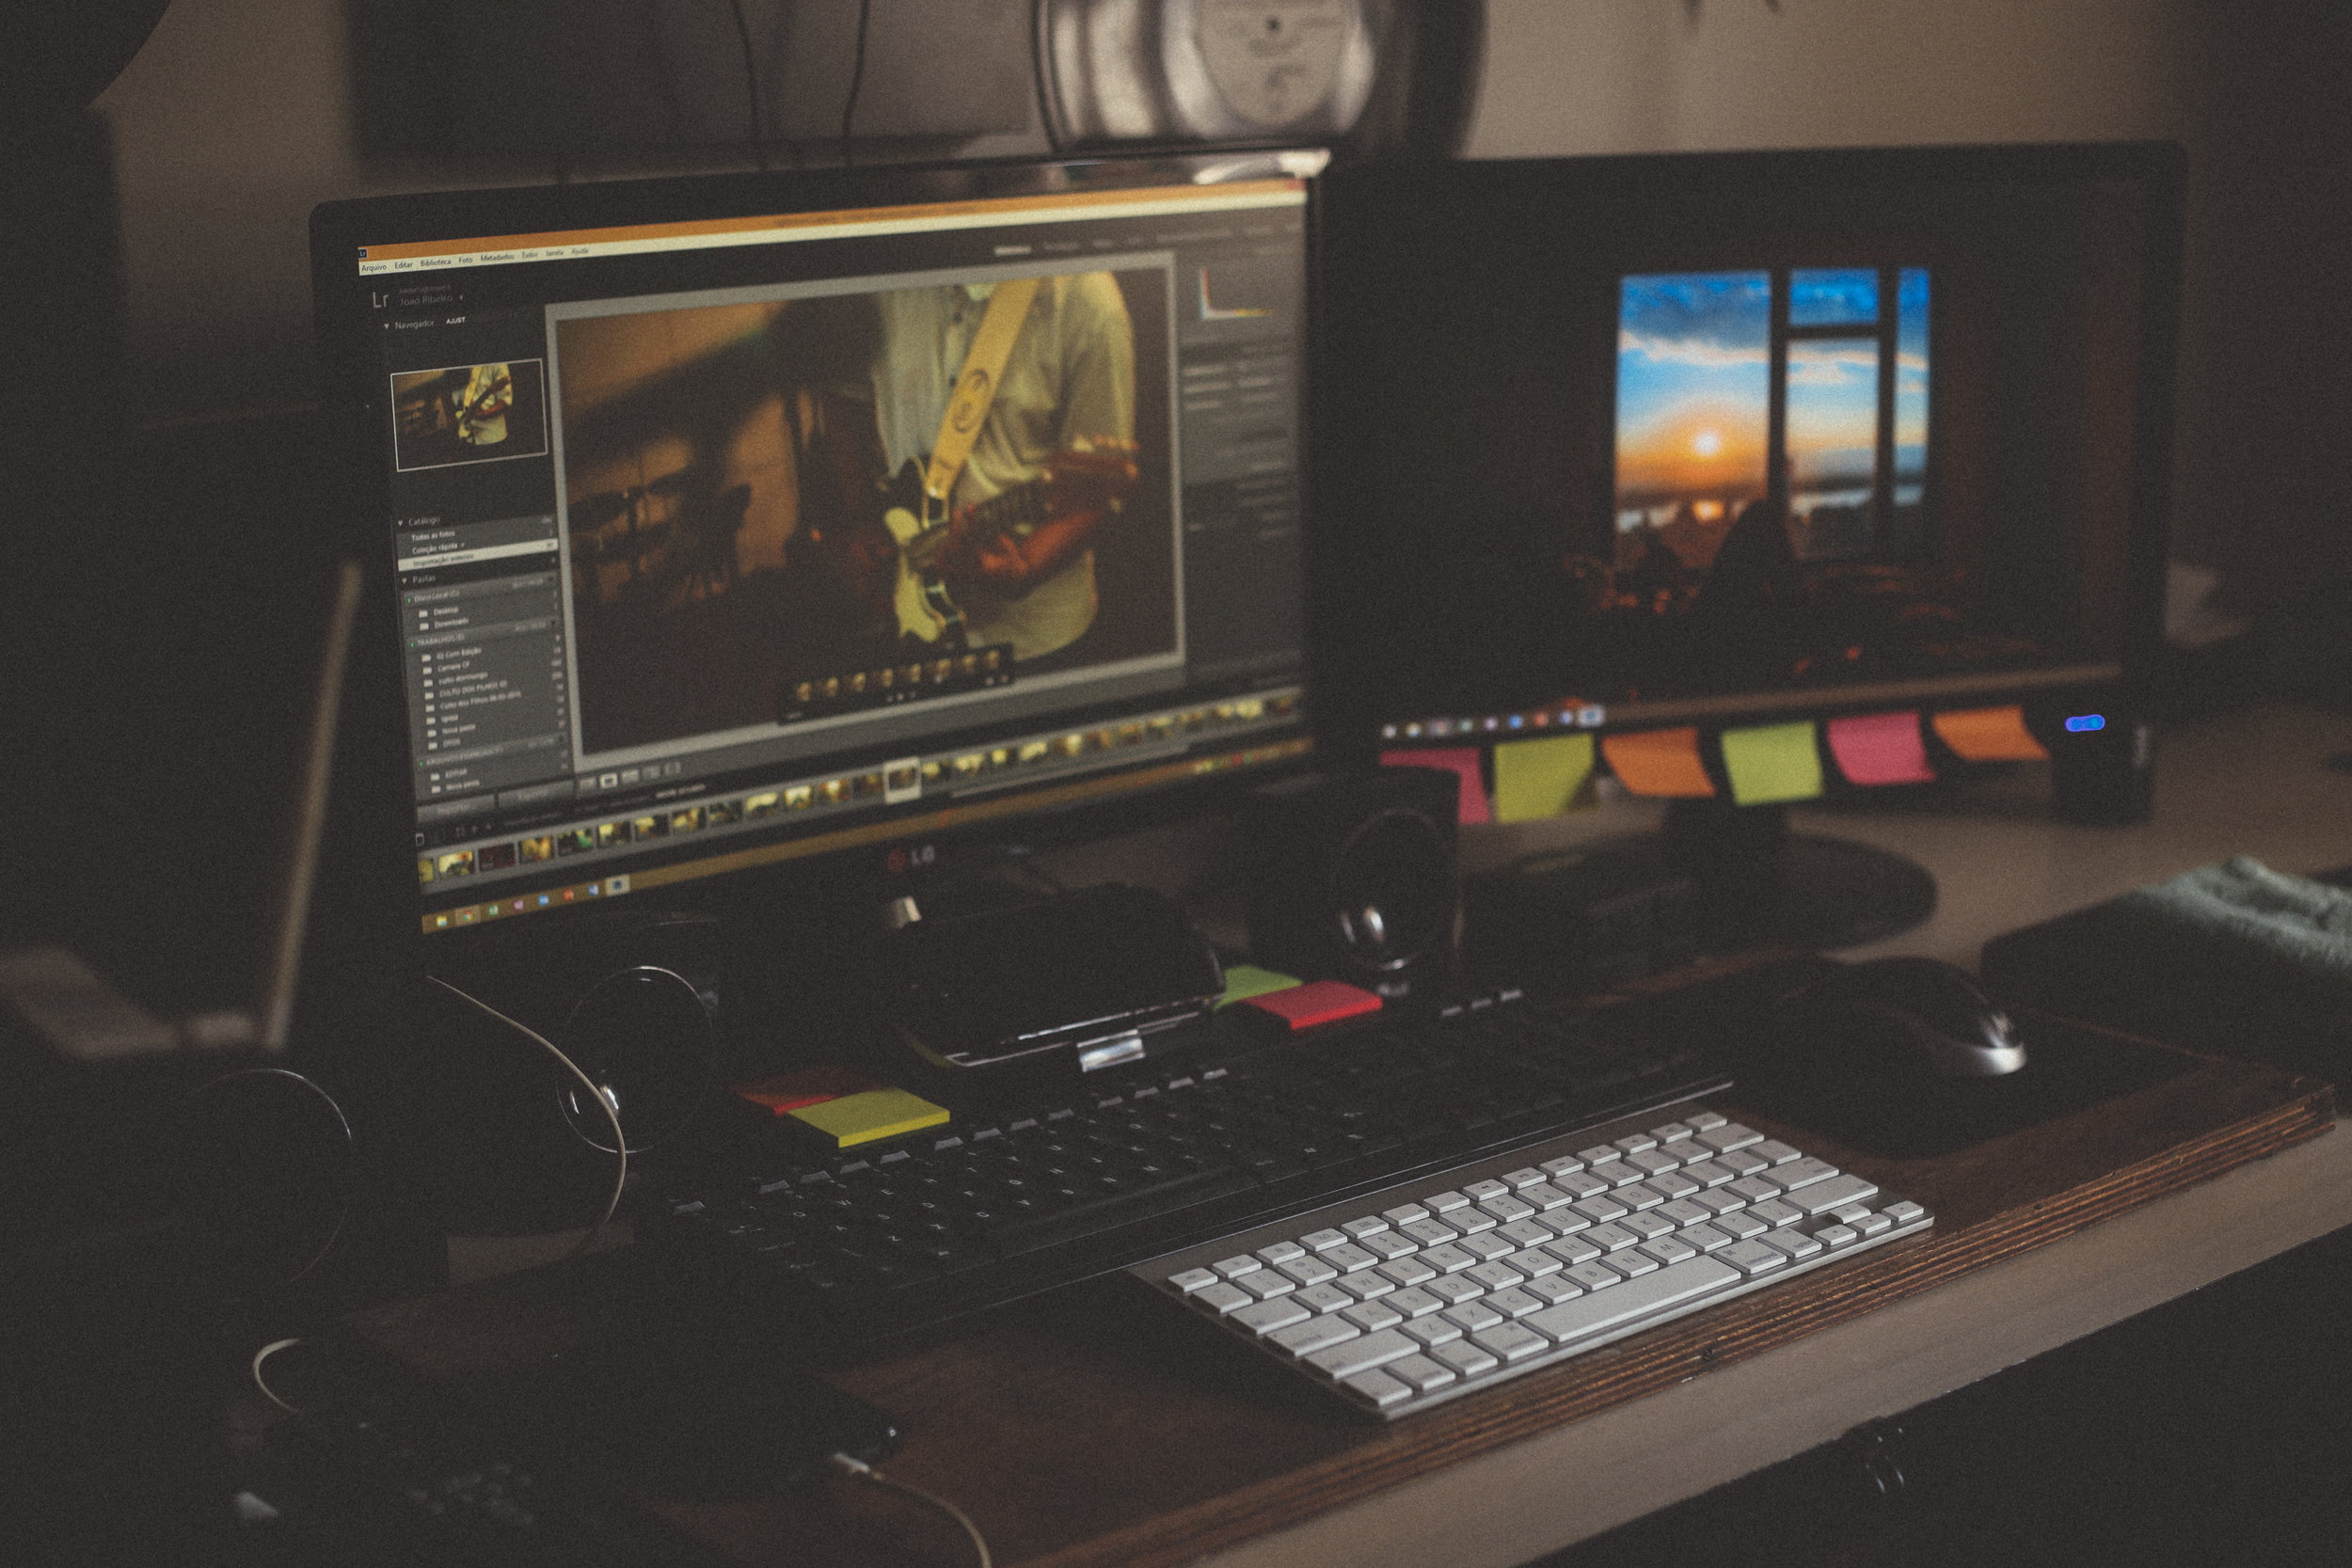 VIDEO EDITING - CREATIVE VIDEO EDITING